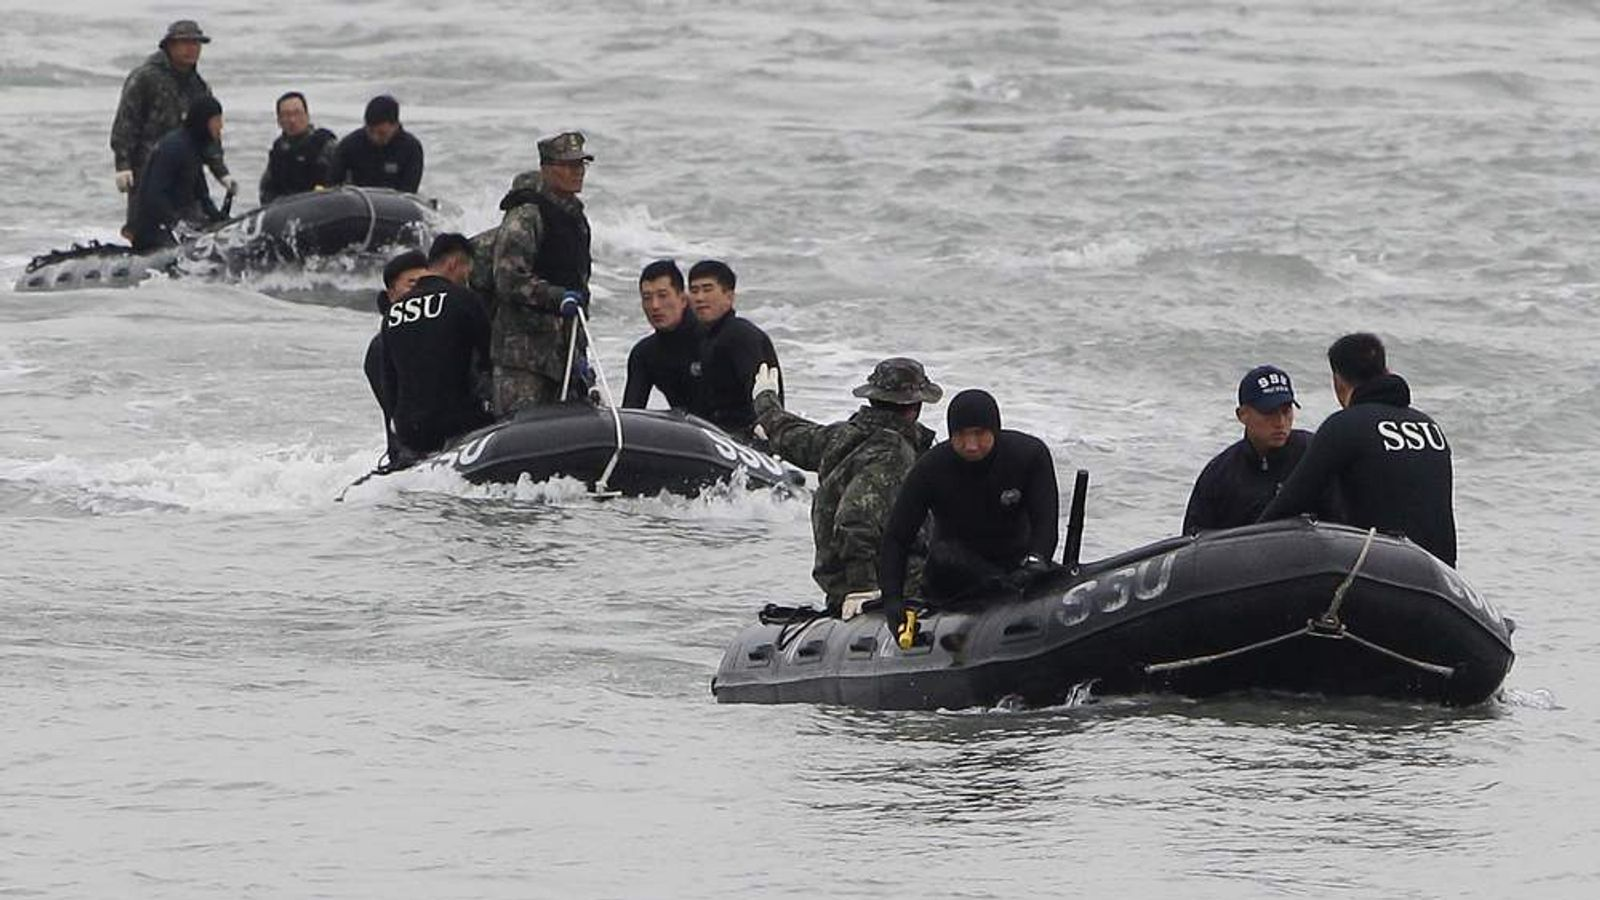 Rescue and Search Continue At The Site Of Ferry Disaster Off South Korea